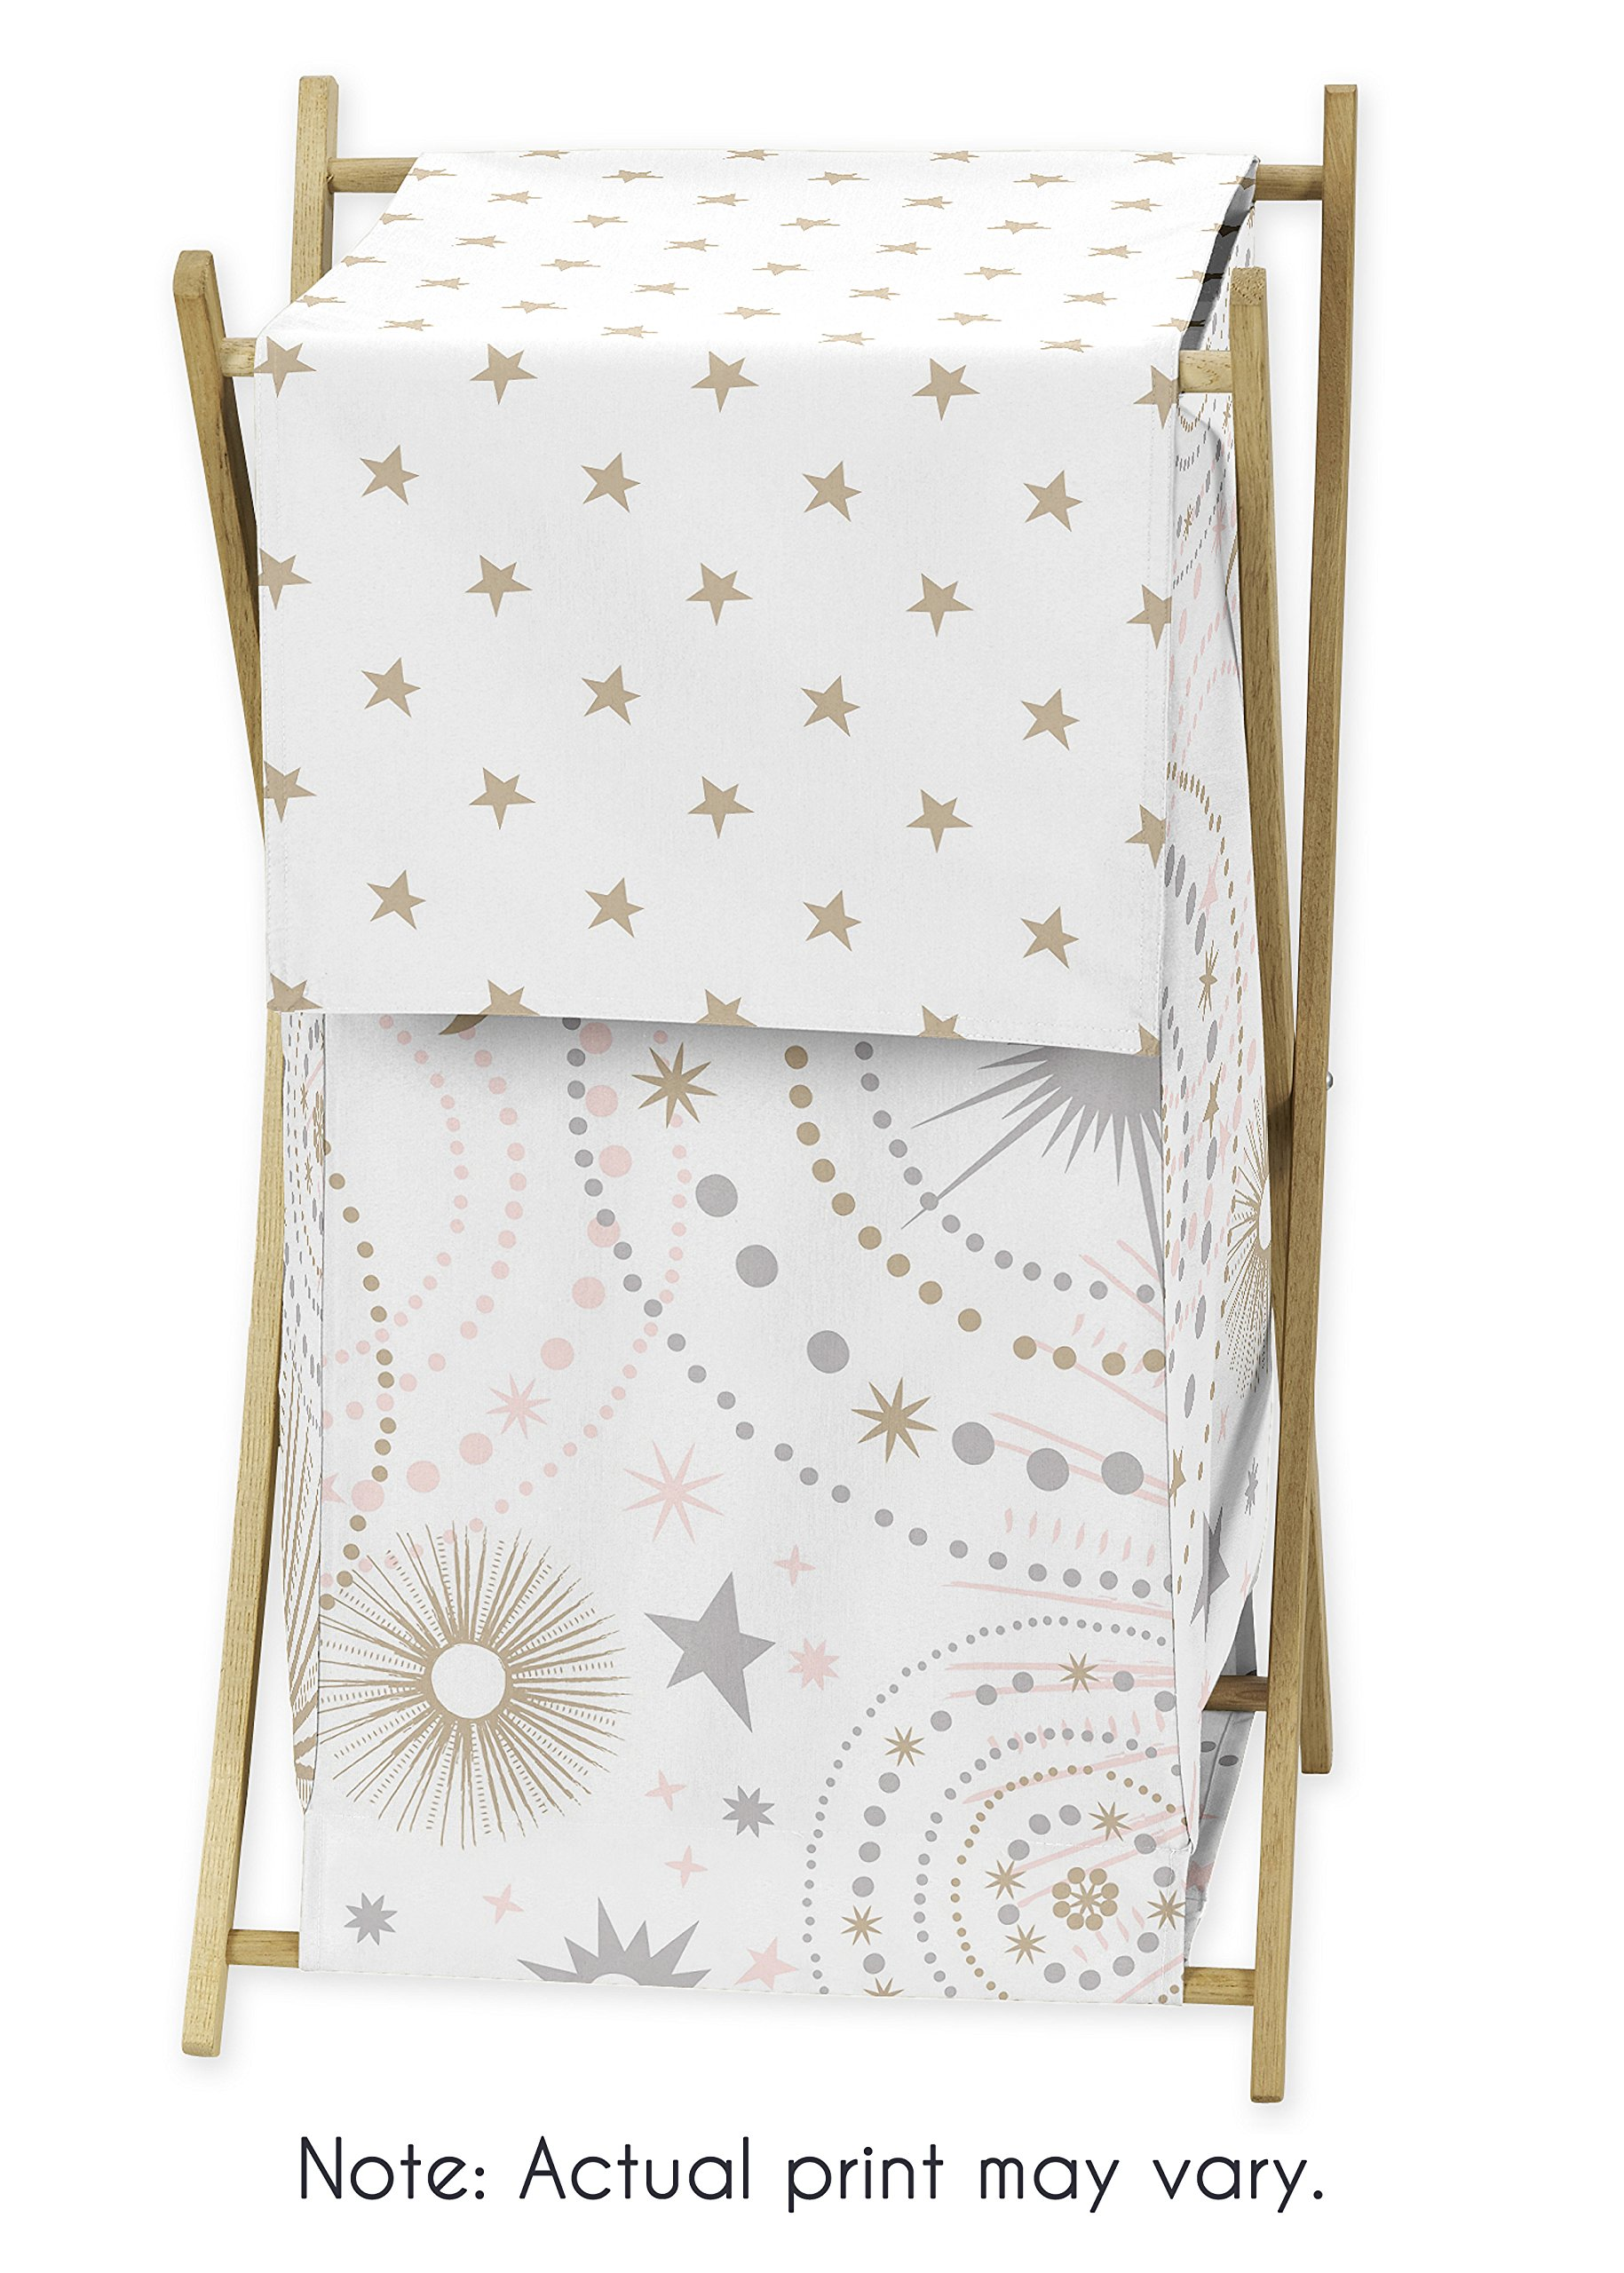 Sweet JoJo Designs Blush Pink, Gold, Grey and White Star and Moon Baby Kid Clothes Laundry Hamper for Celestial Collection by